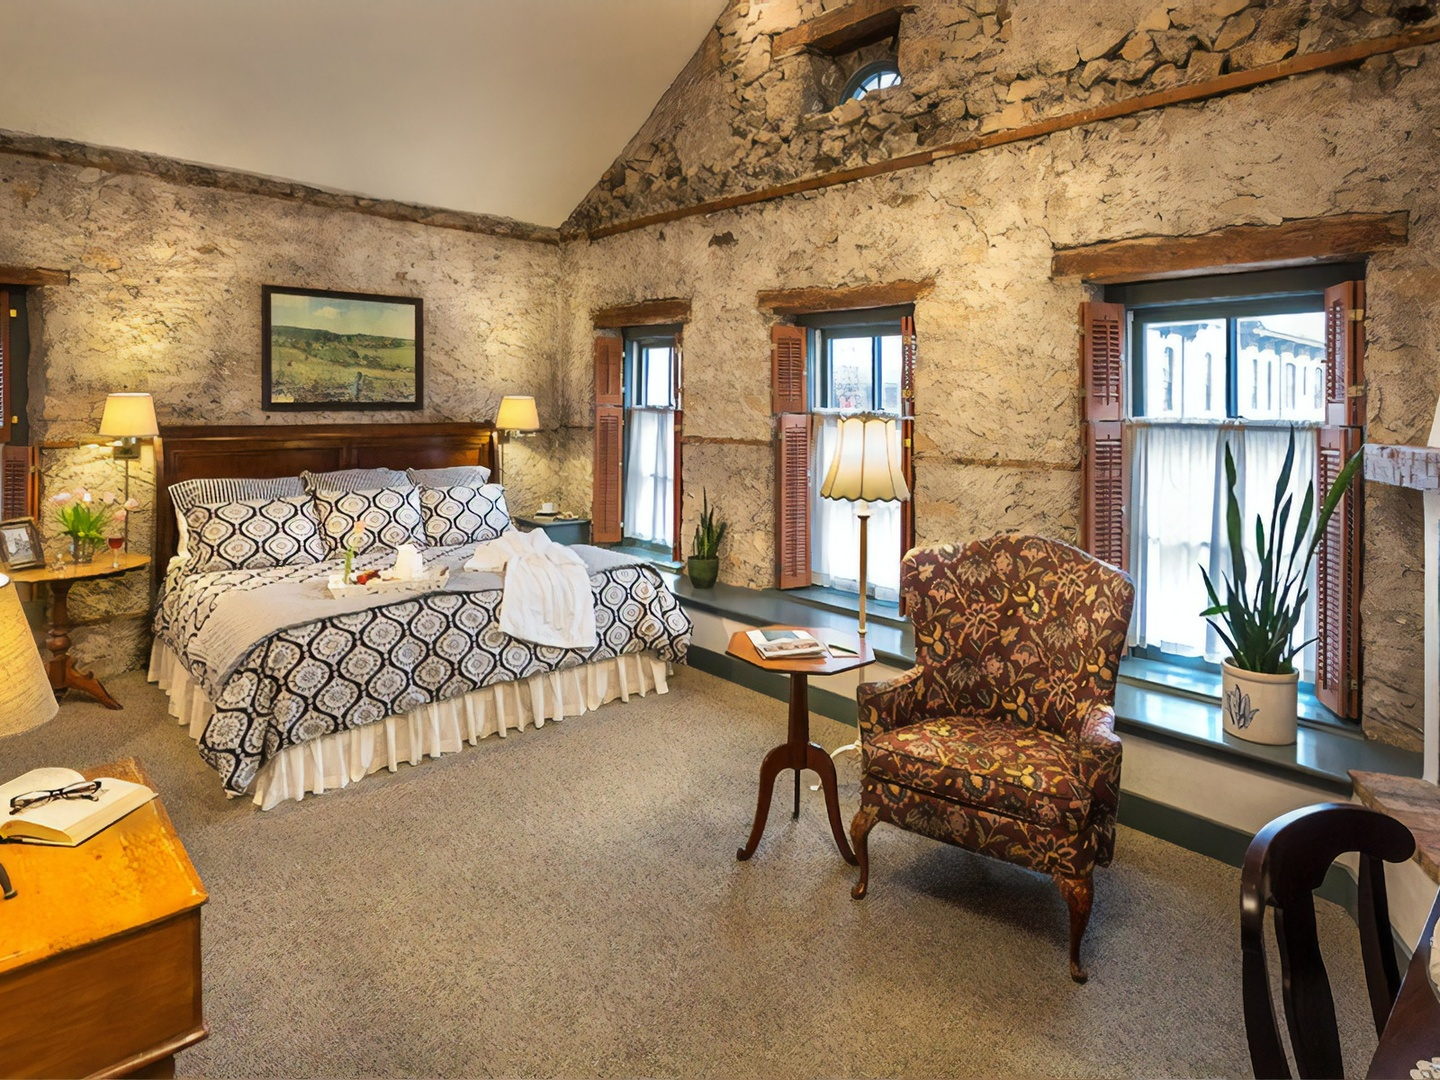 A living room filled with furniture and a large window at Washington House Inn.